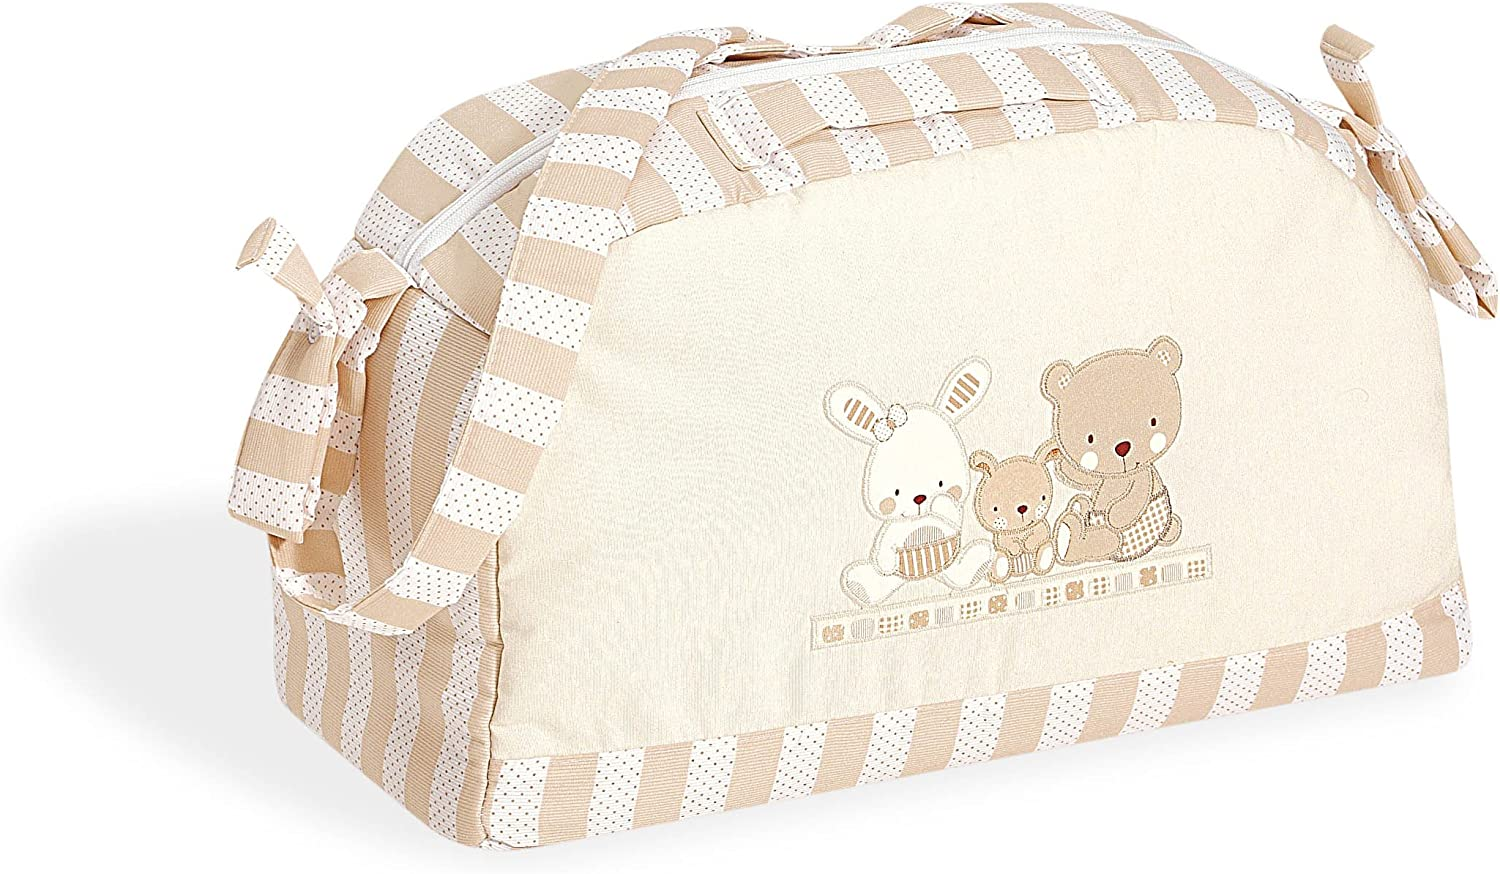 Interbaby Love - Bolso de maternidad, color beige